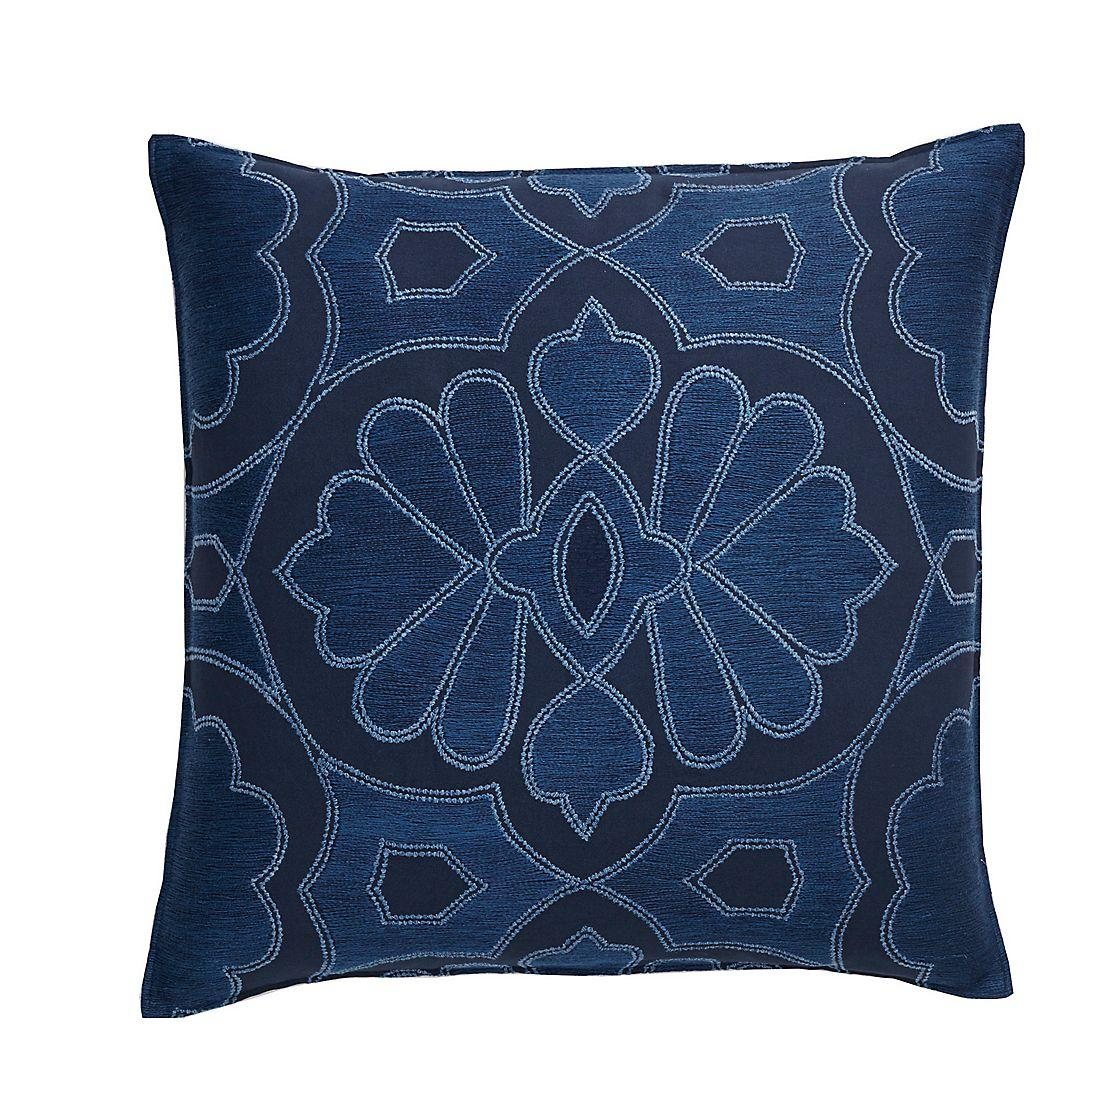 Floral Embroidered Accent Pillow Cover